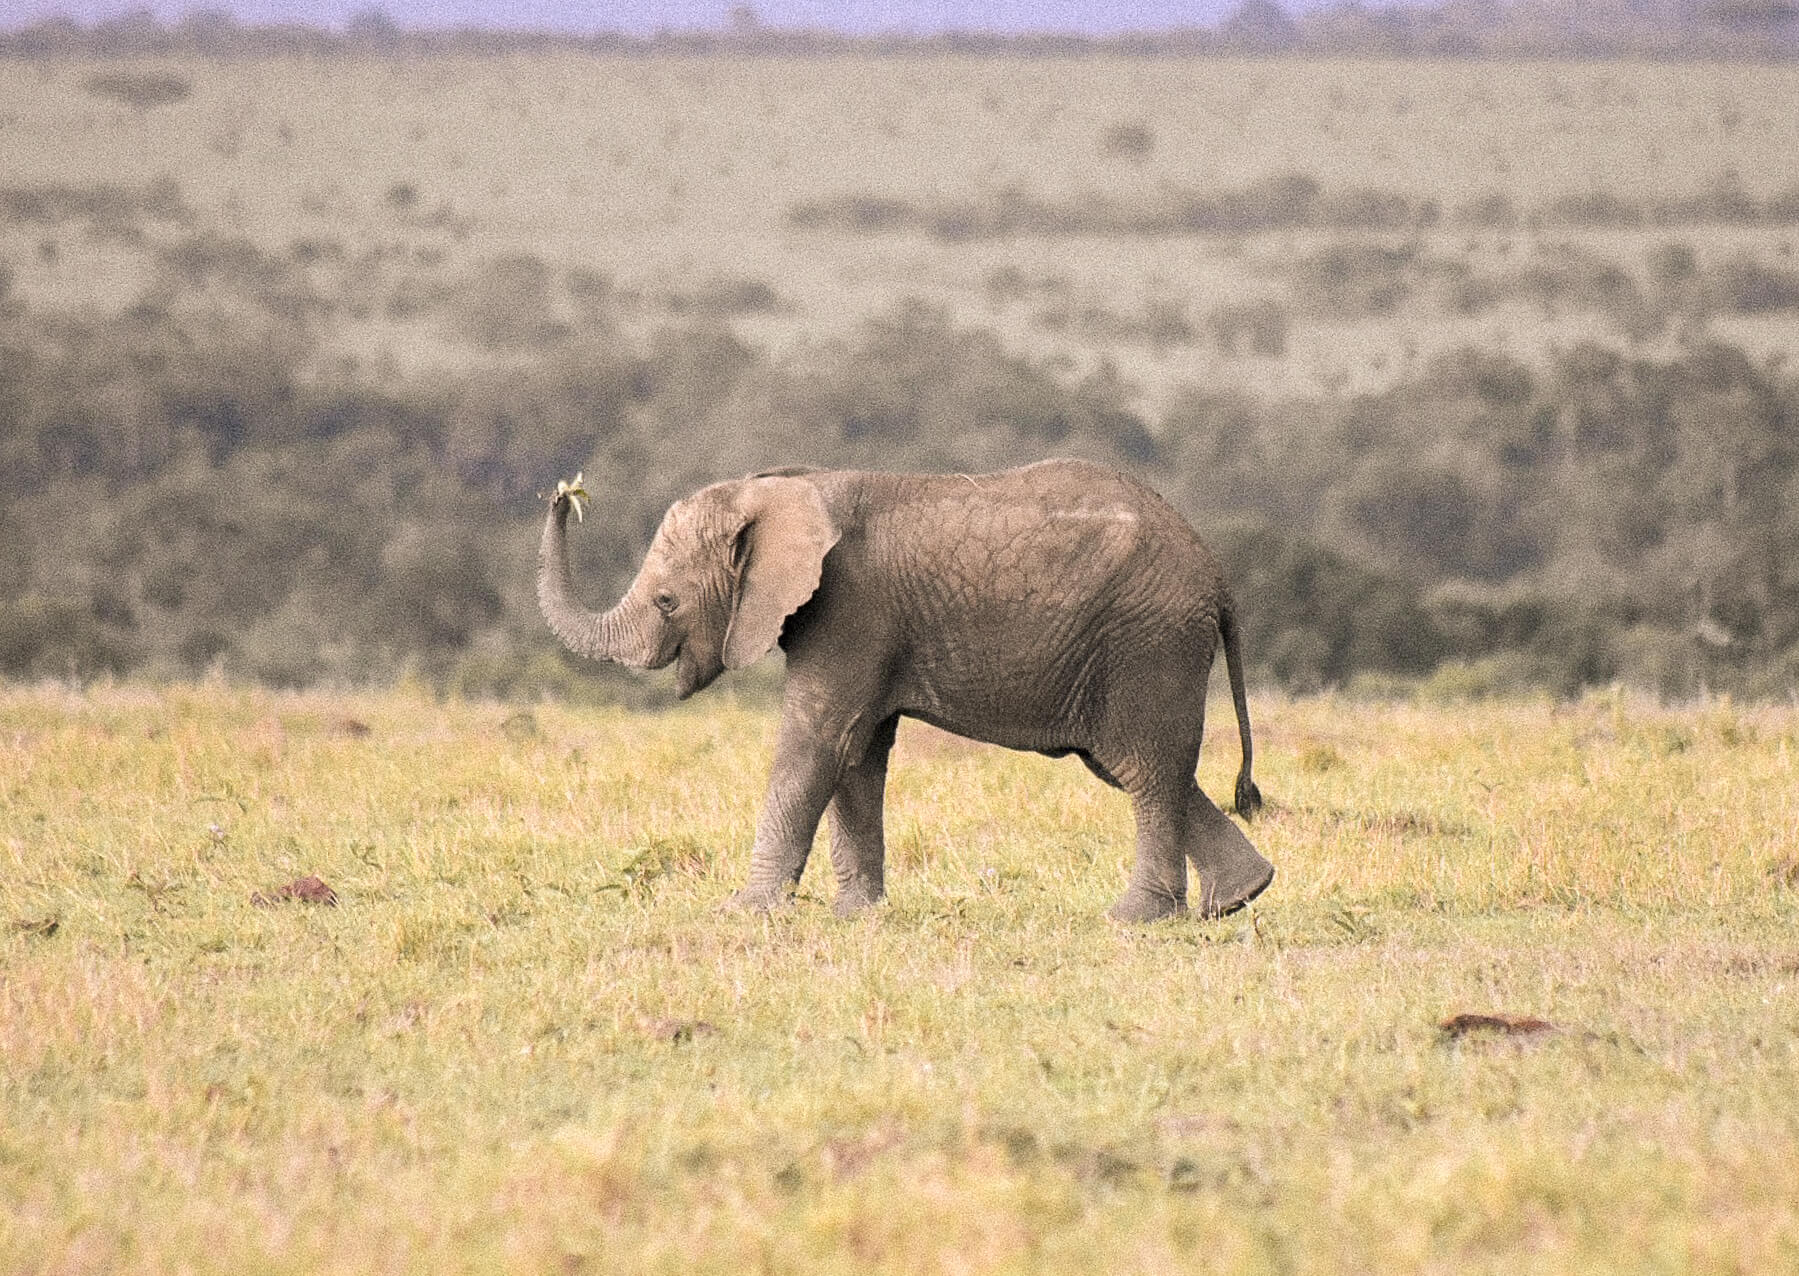 A baby elephant walking across the plains of the Maasai Mara holding a bunch of grass in his trunk